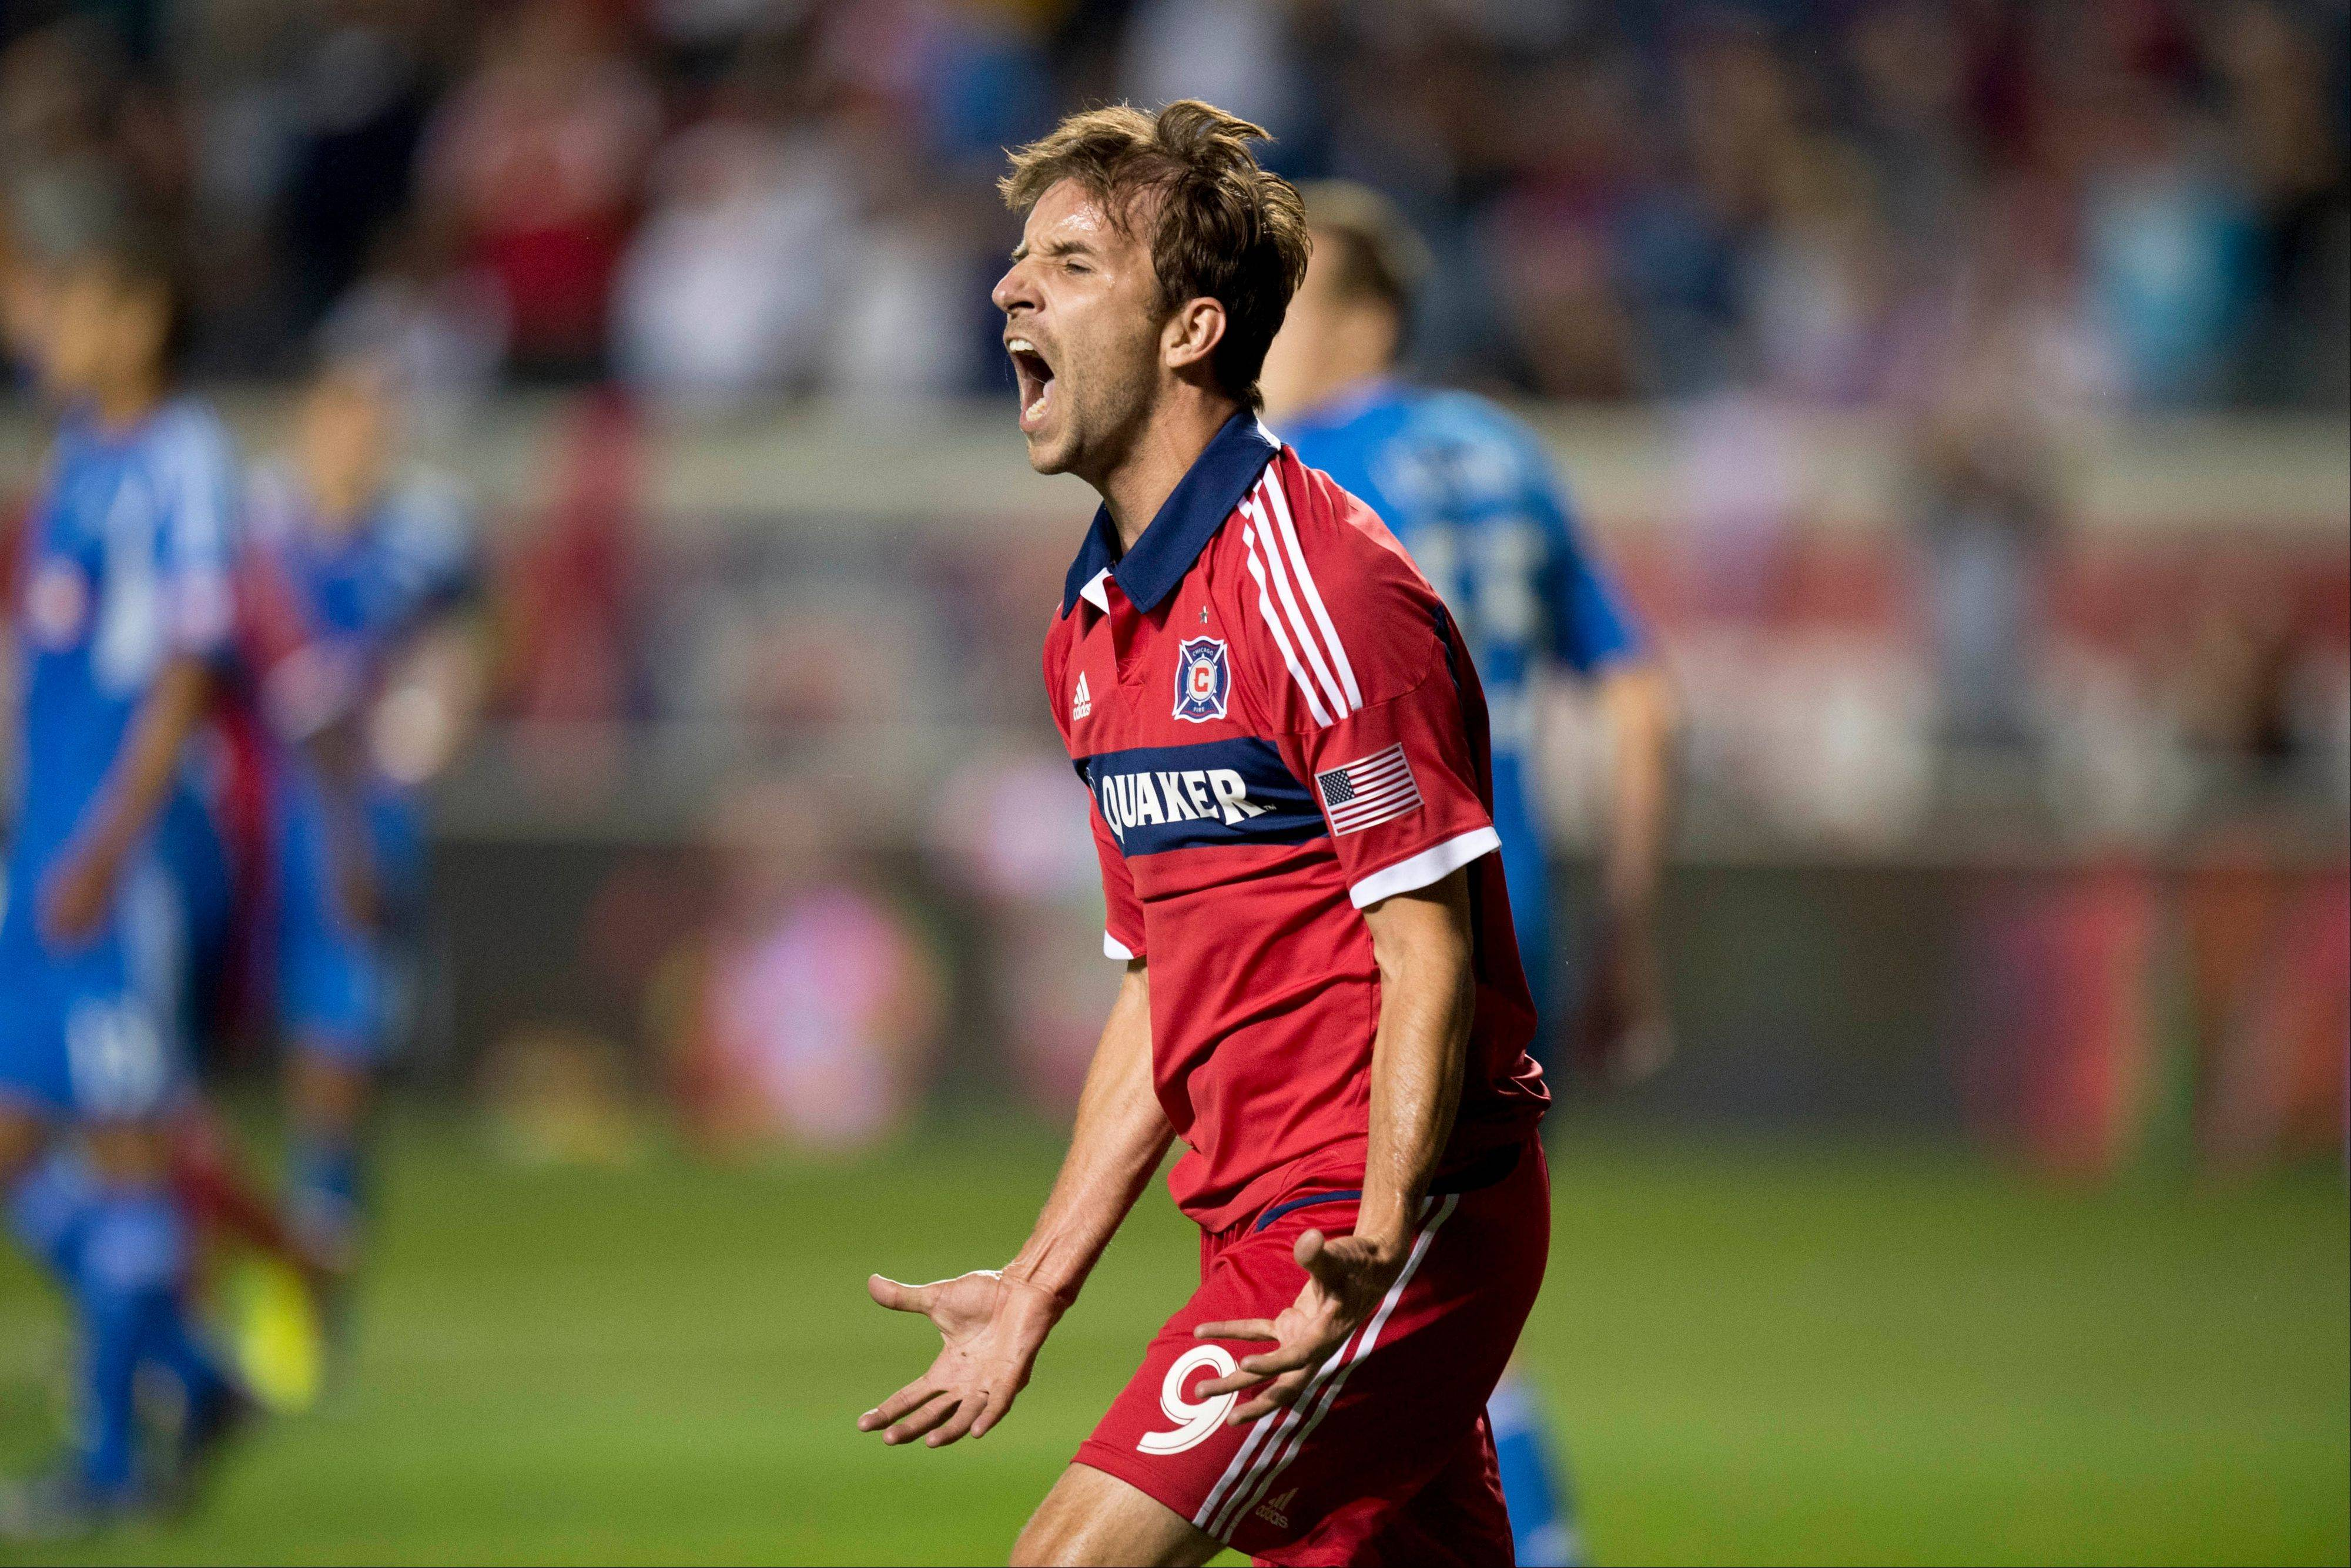 Chicago Fire forward Mike Magee celebrates his goal during the second half of an MLS soccer game against the Montreal Impact Saturday in Bridgeview. The Fire and Impact tied 2-2.